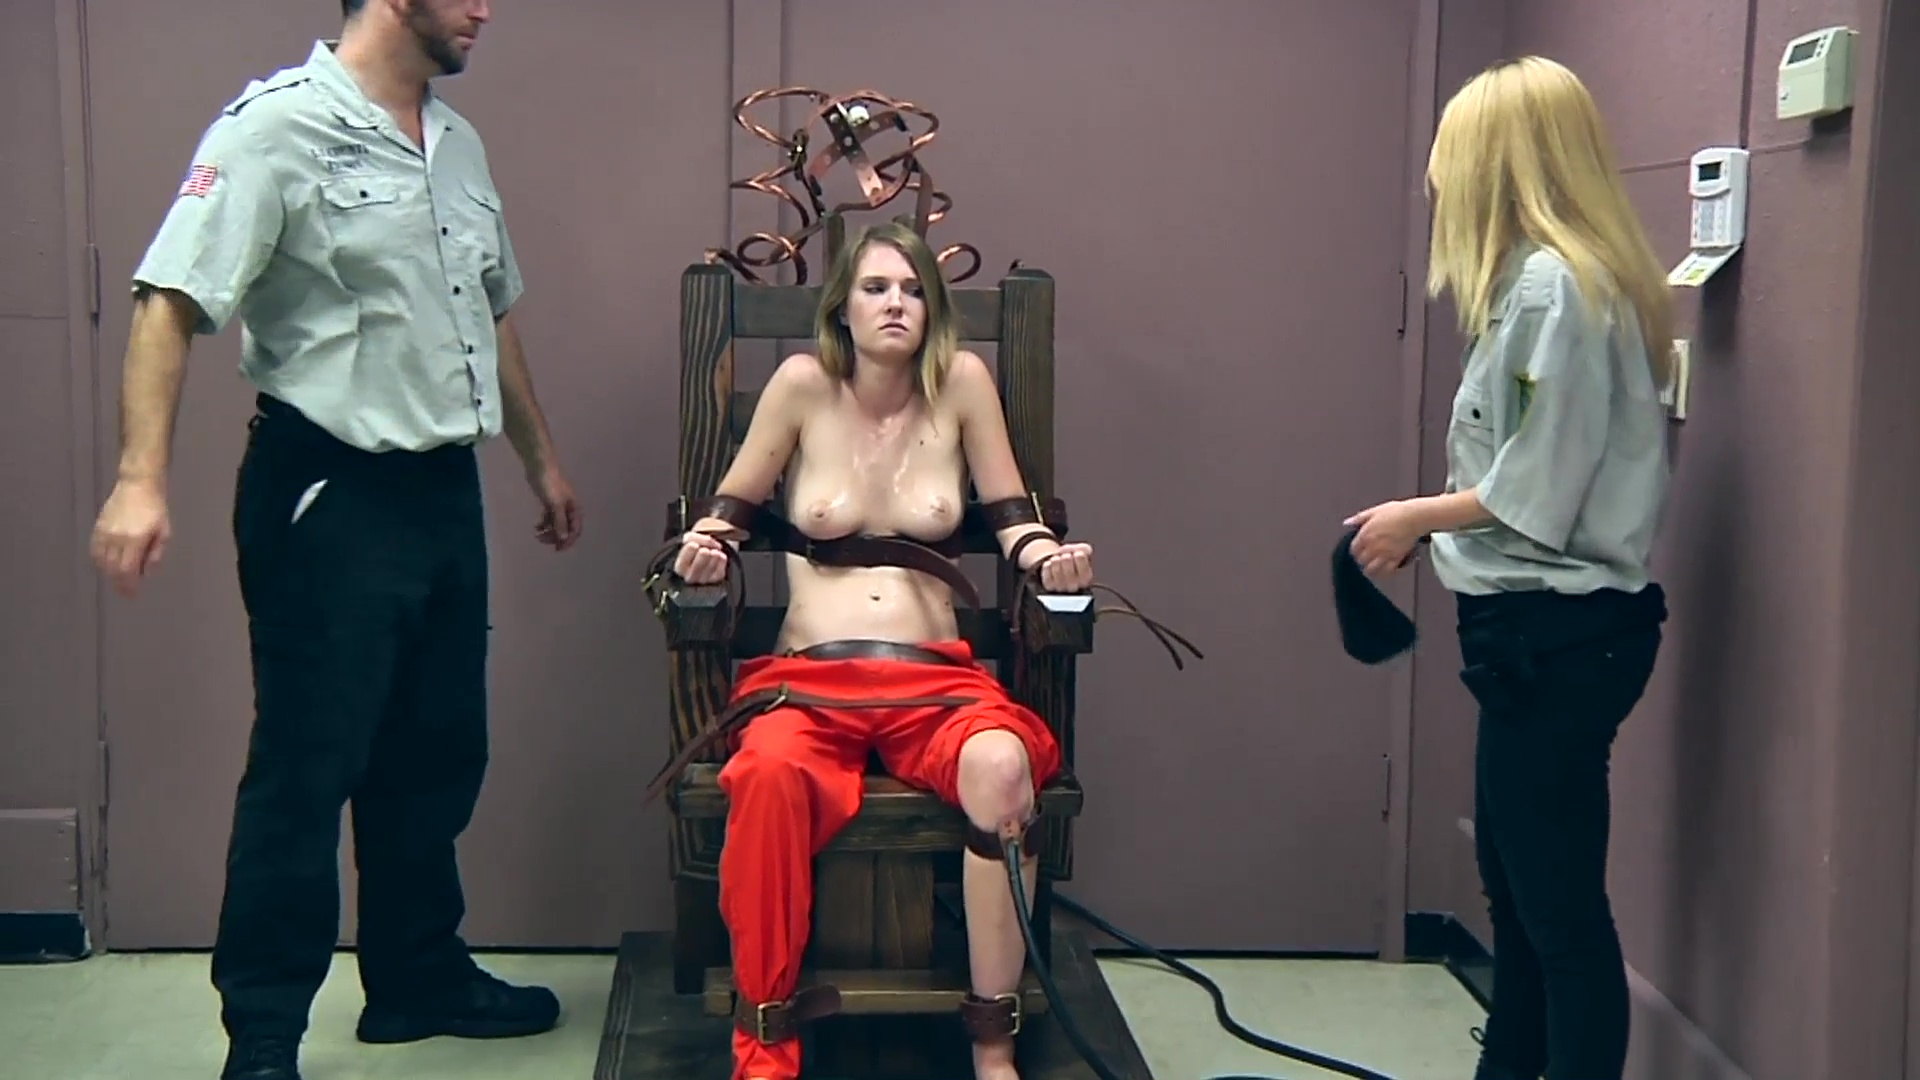 nude woman electric chair